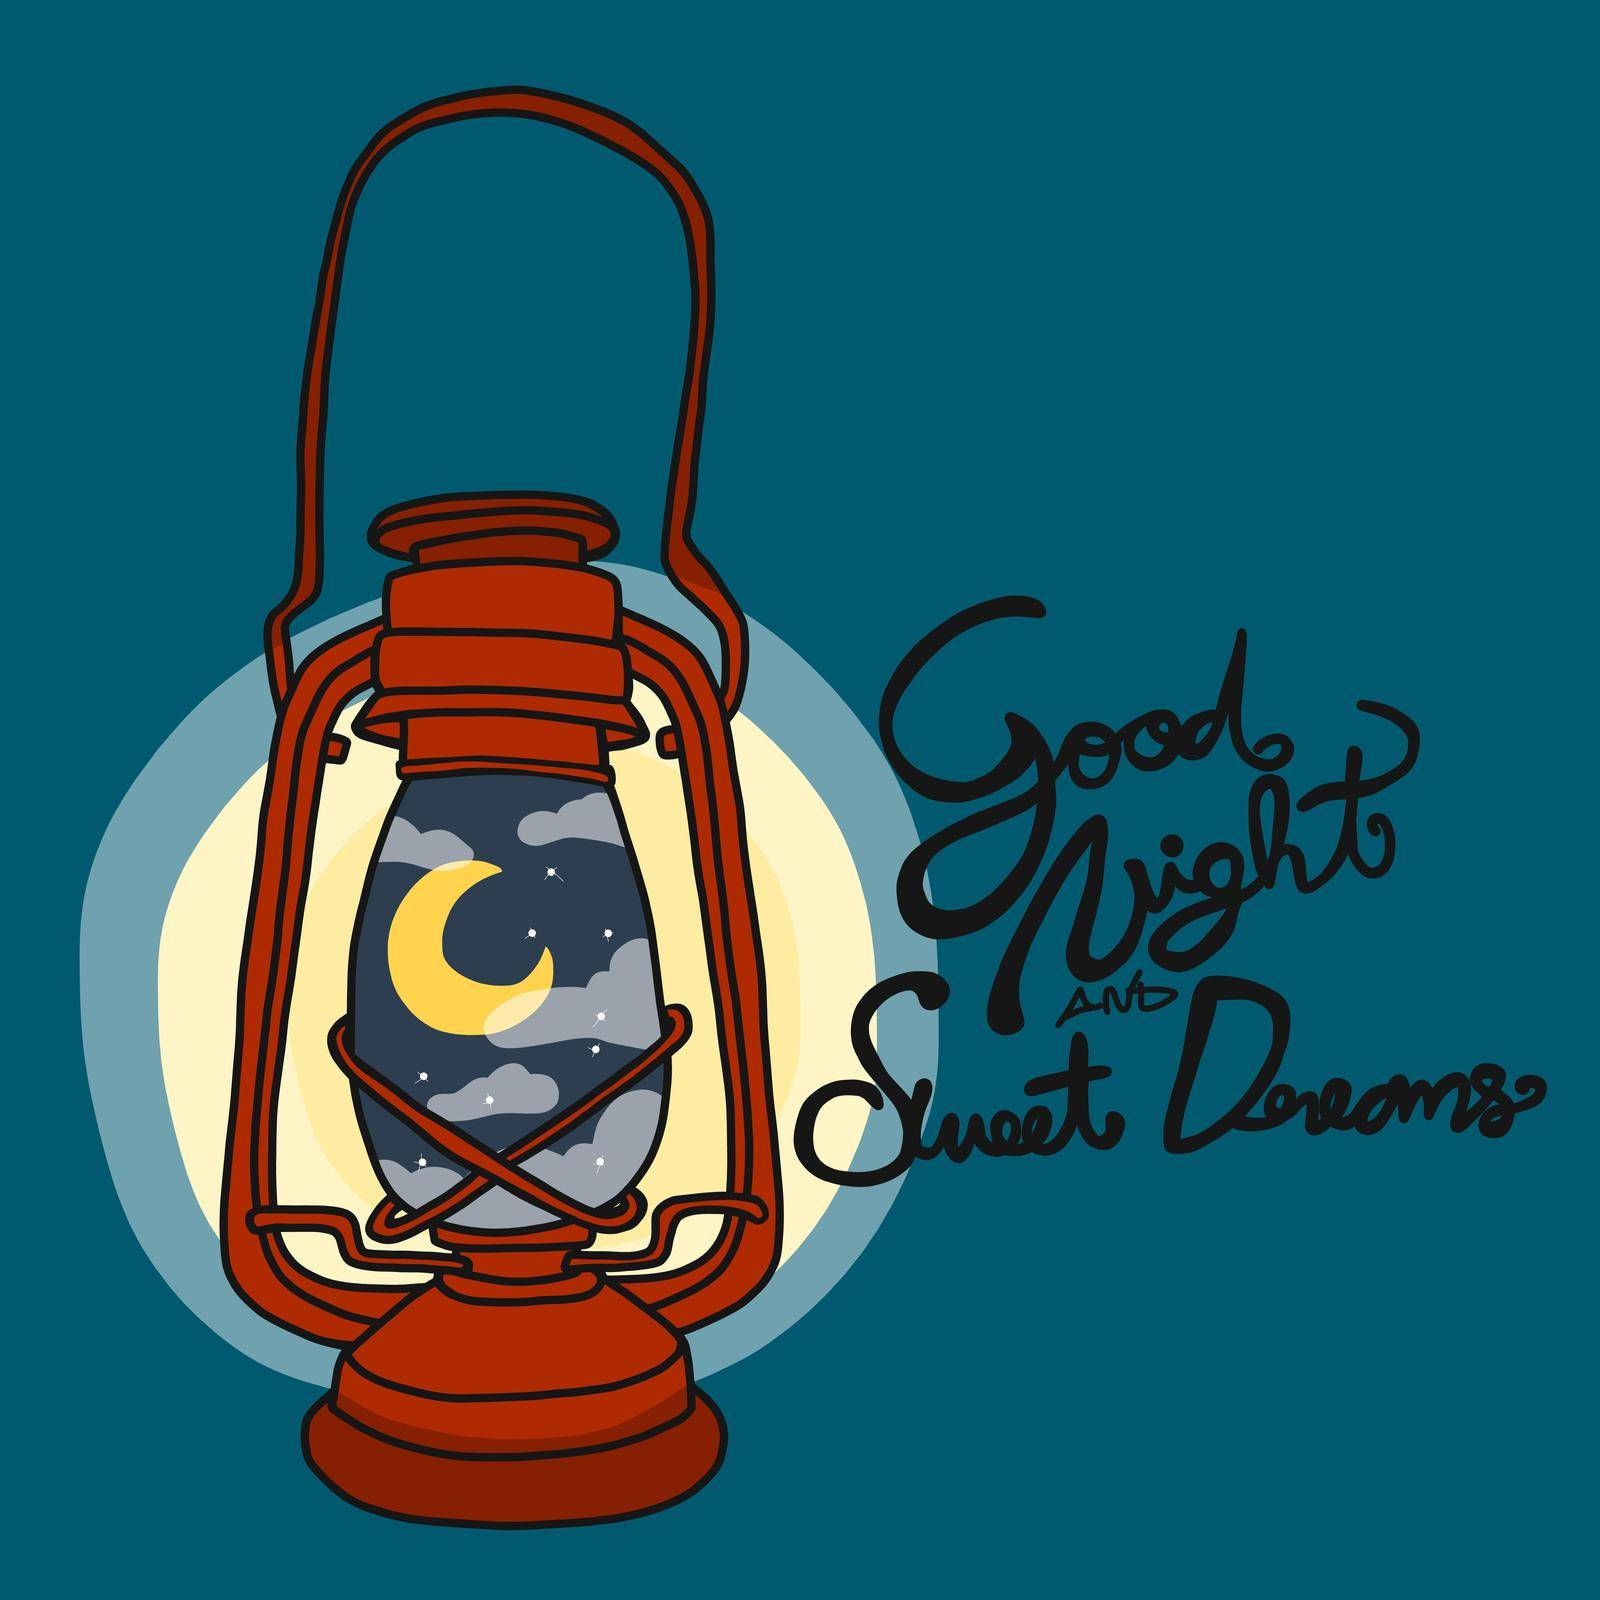 Goodnight and sweet dreams vintage lamp with moon and cloud inside cartoon vector illustration